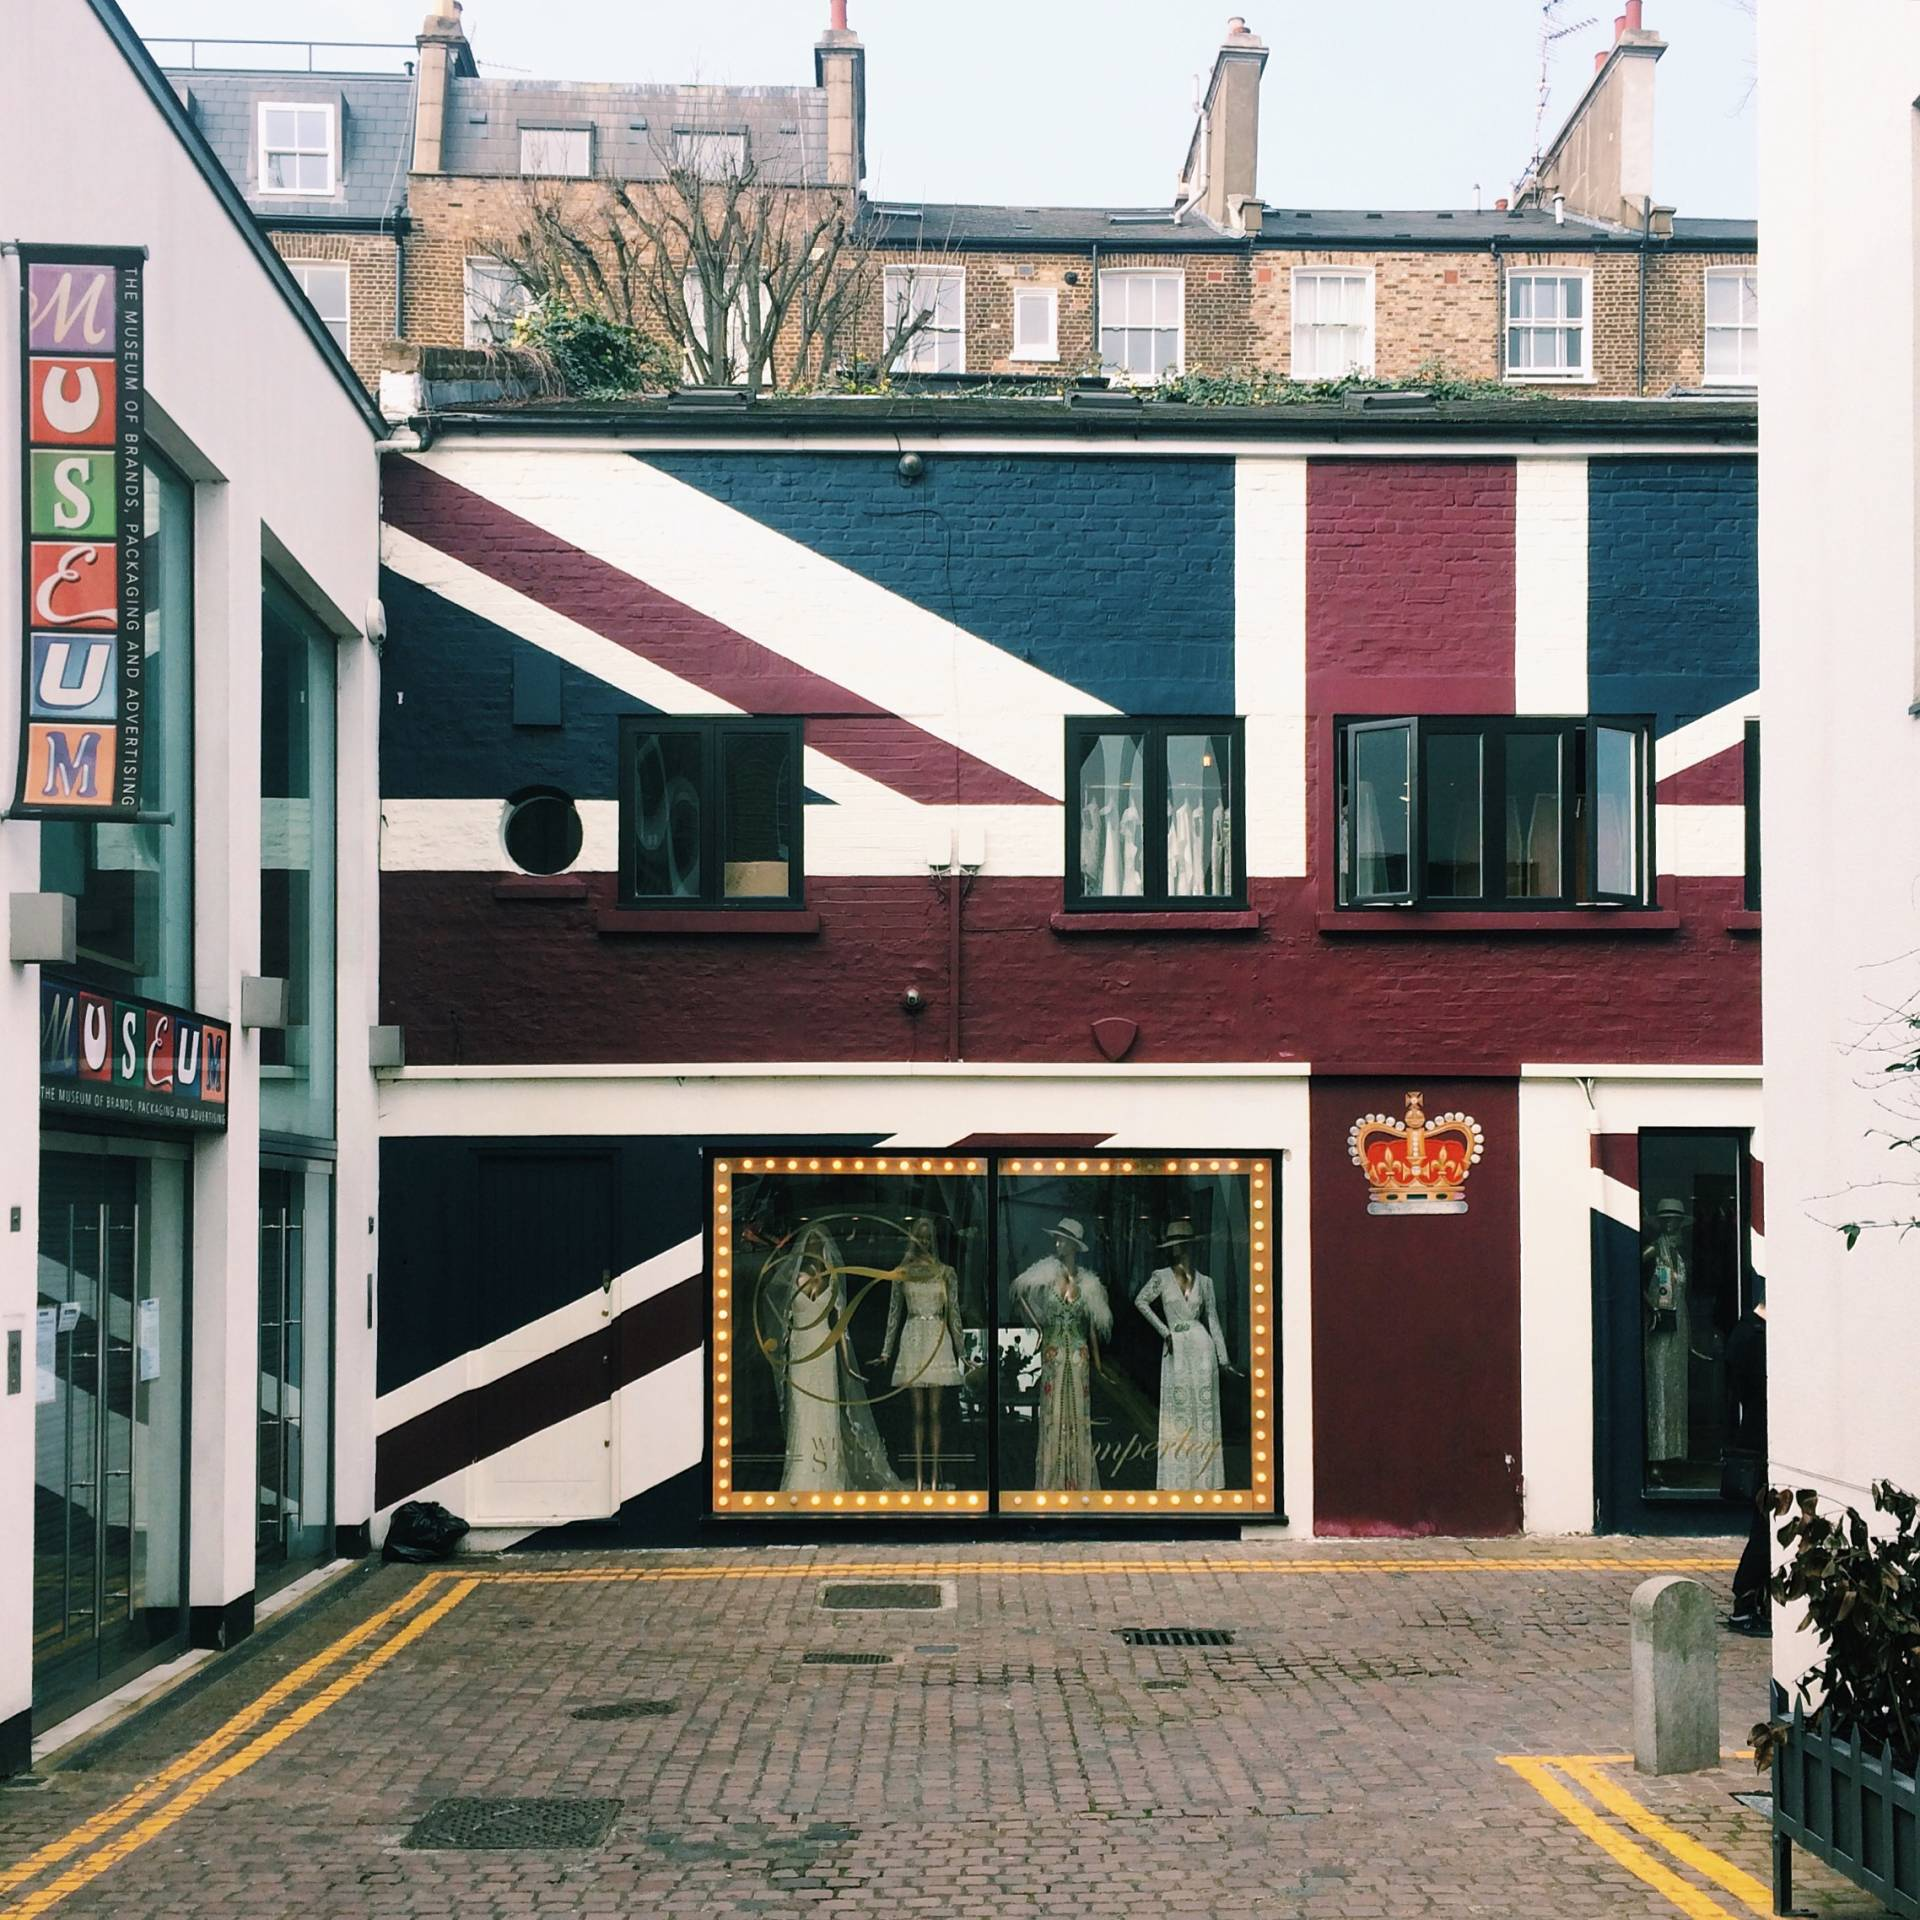 Union Jack Wall – Colville Mews, Notting Hill